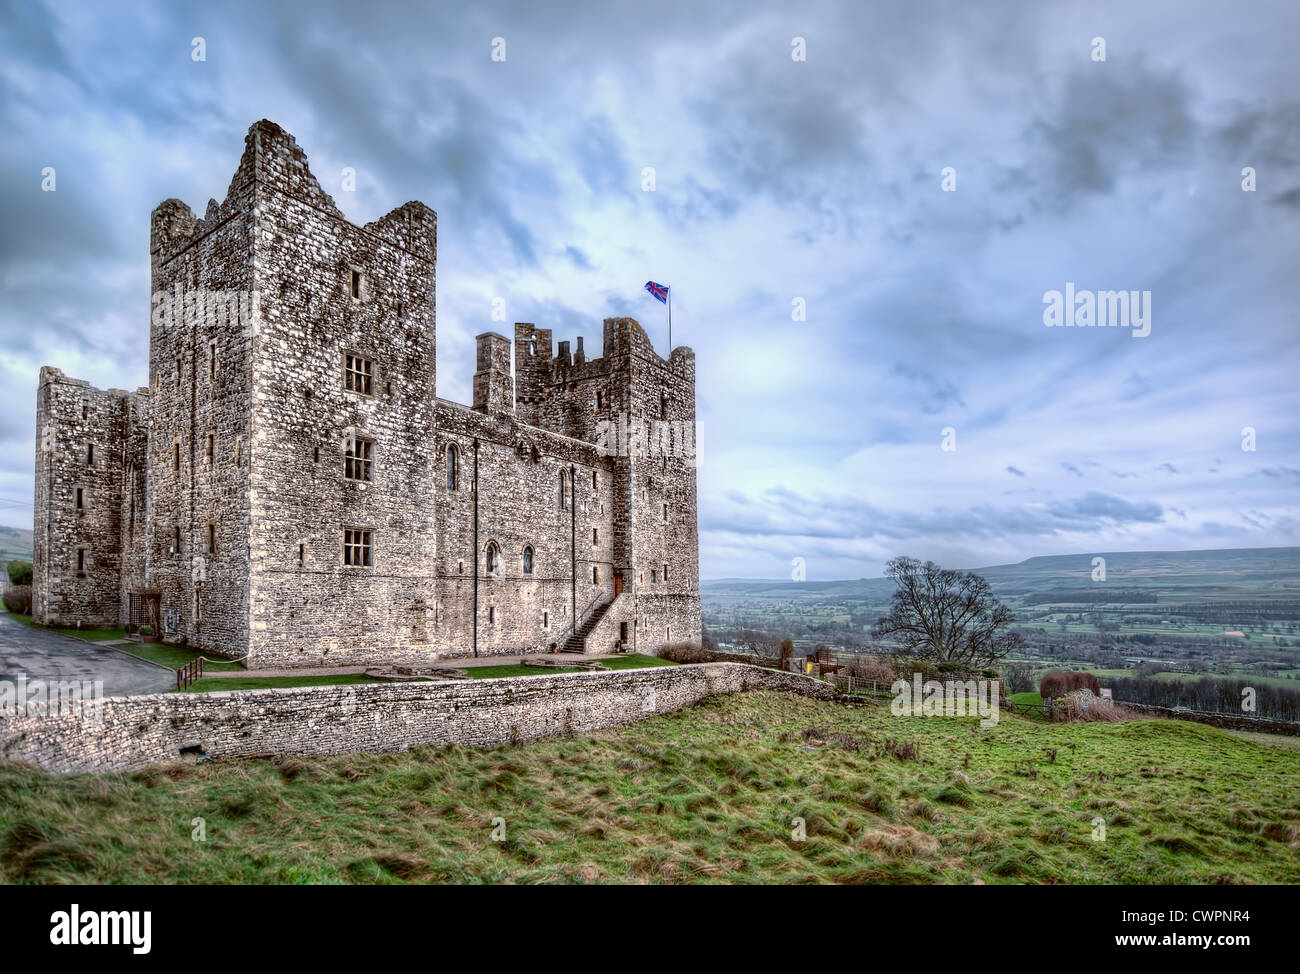 The medieval Bolton Castle in Yorkshire, England stands on a hill overlooking the ancient countryside - Stock Image